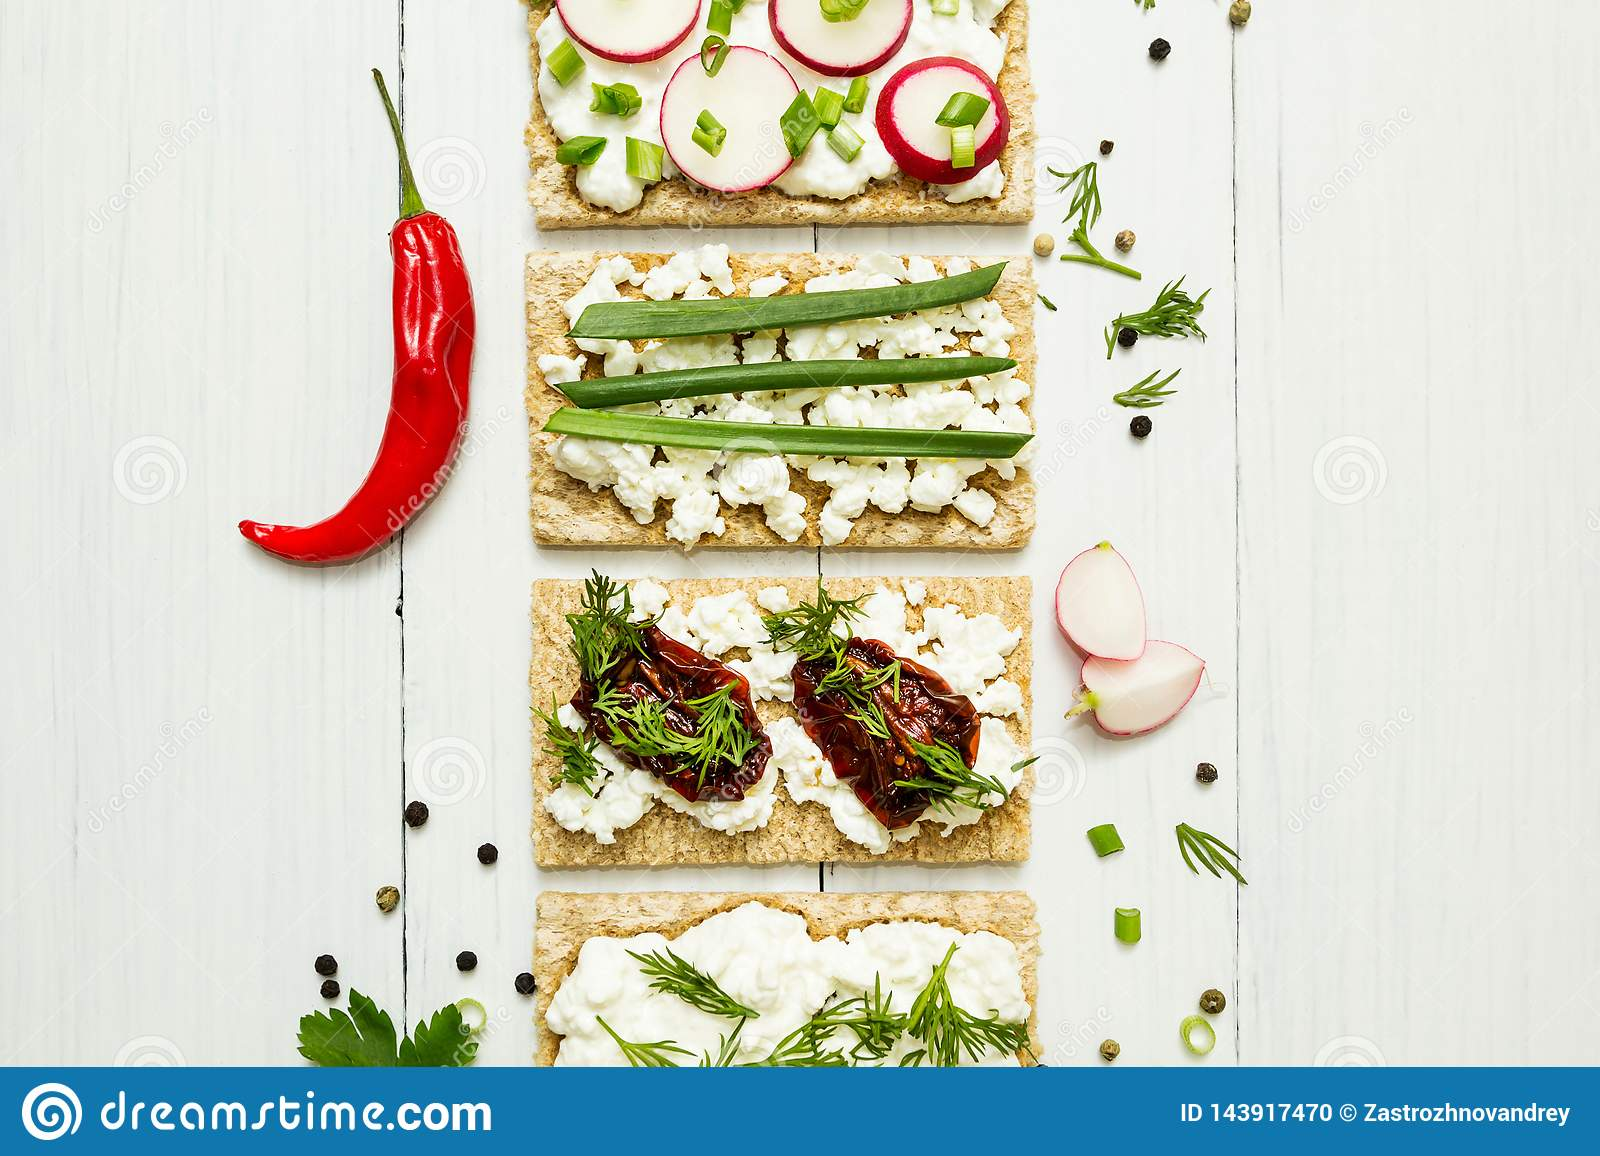 Cheese appetizers with vegetables on a white wooden background. View from above. Healthy eating